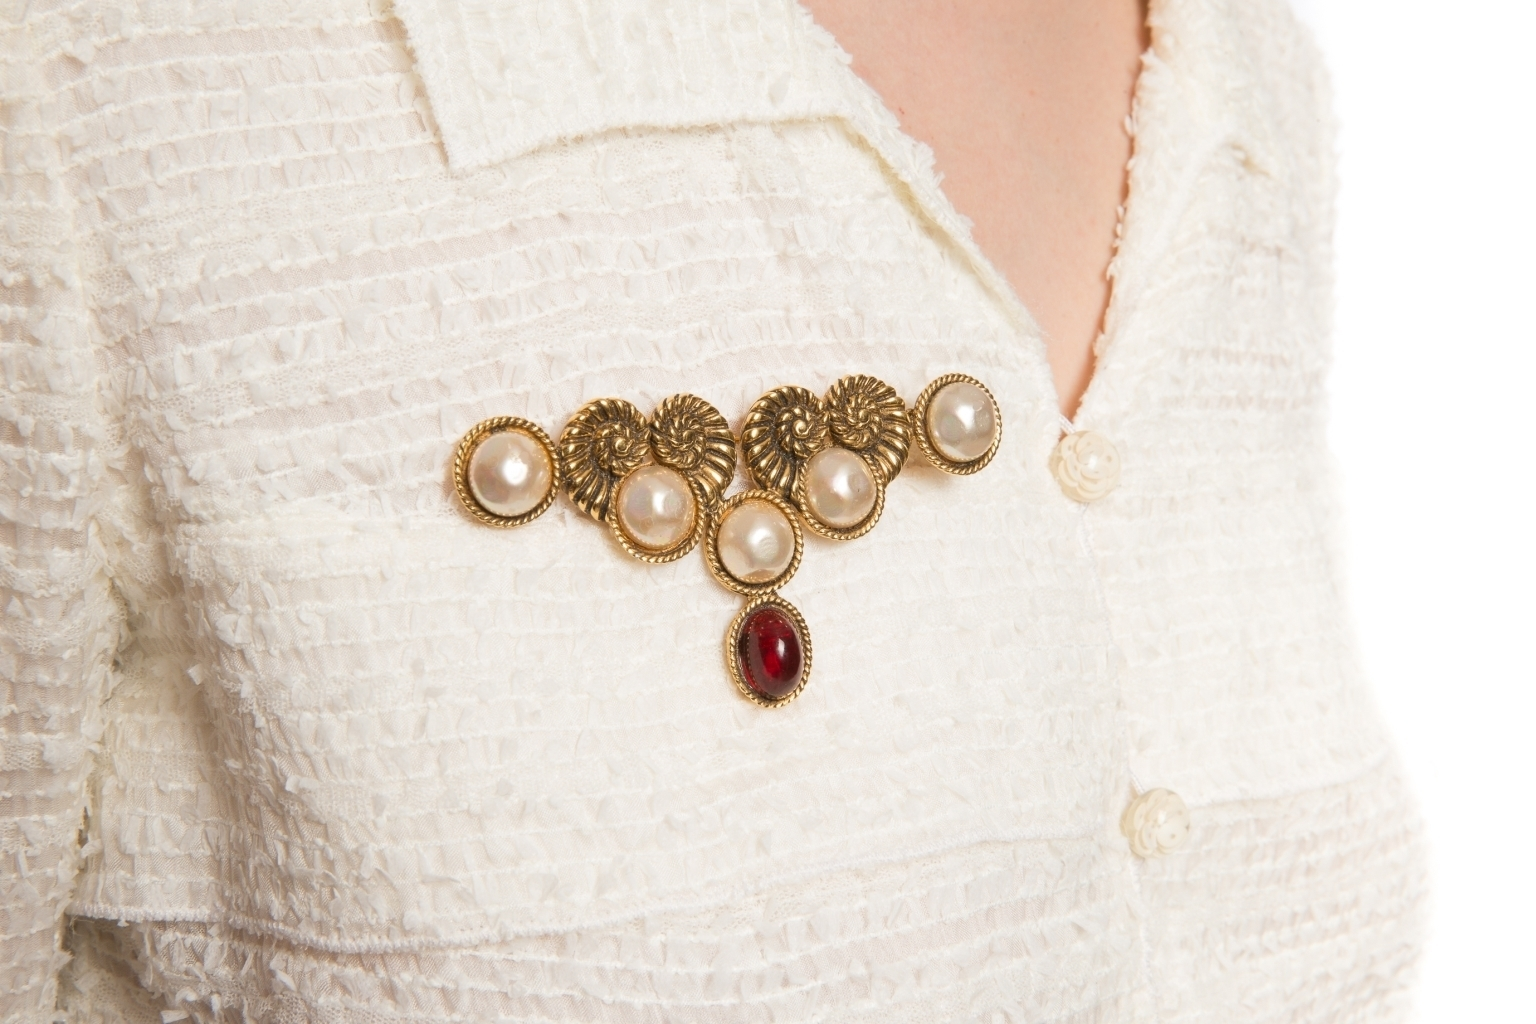 Chanel 1984 Faux Pearl and Gripoix Pin Brooch